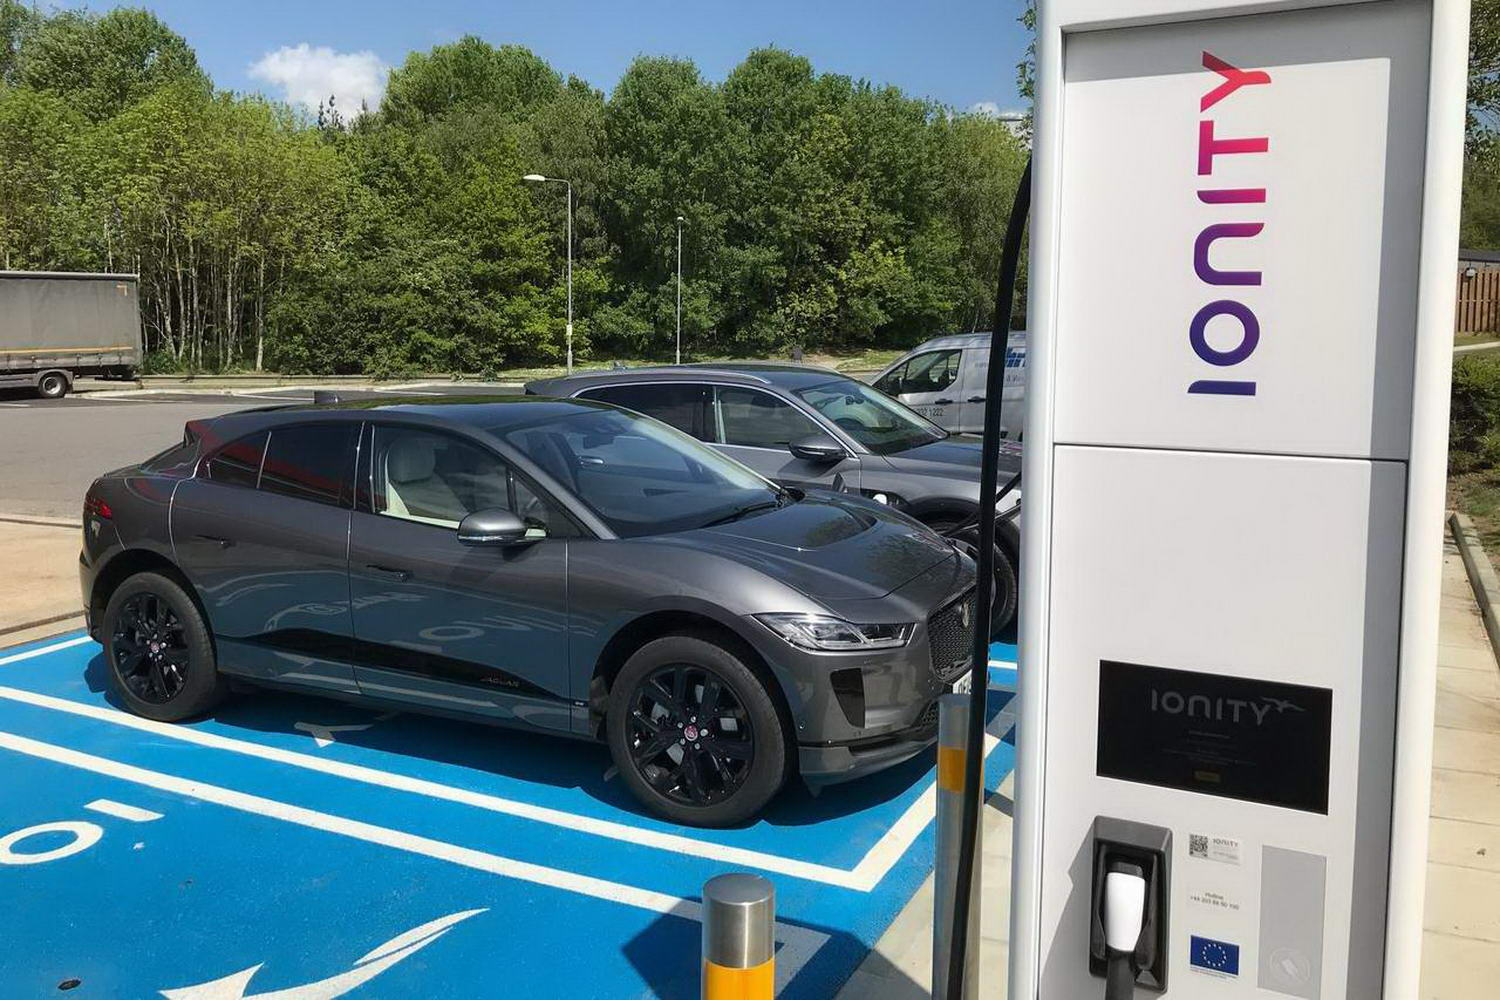 IONITY confirms new charging pricing for EVs